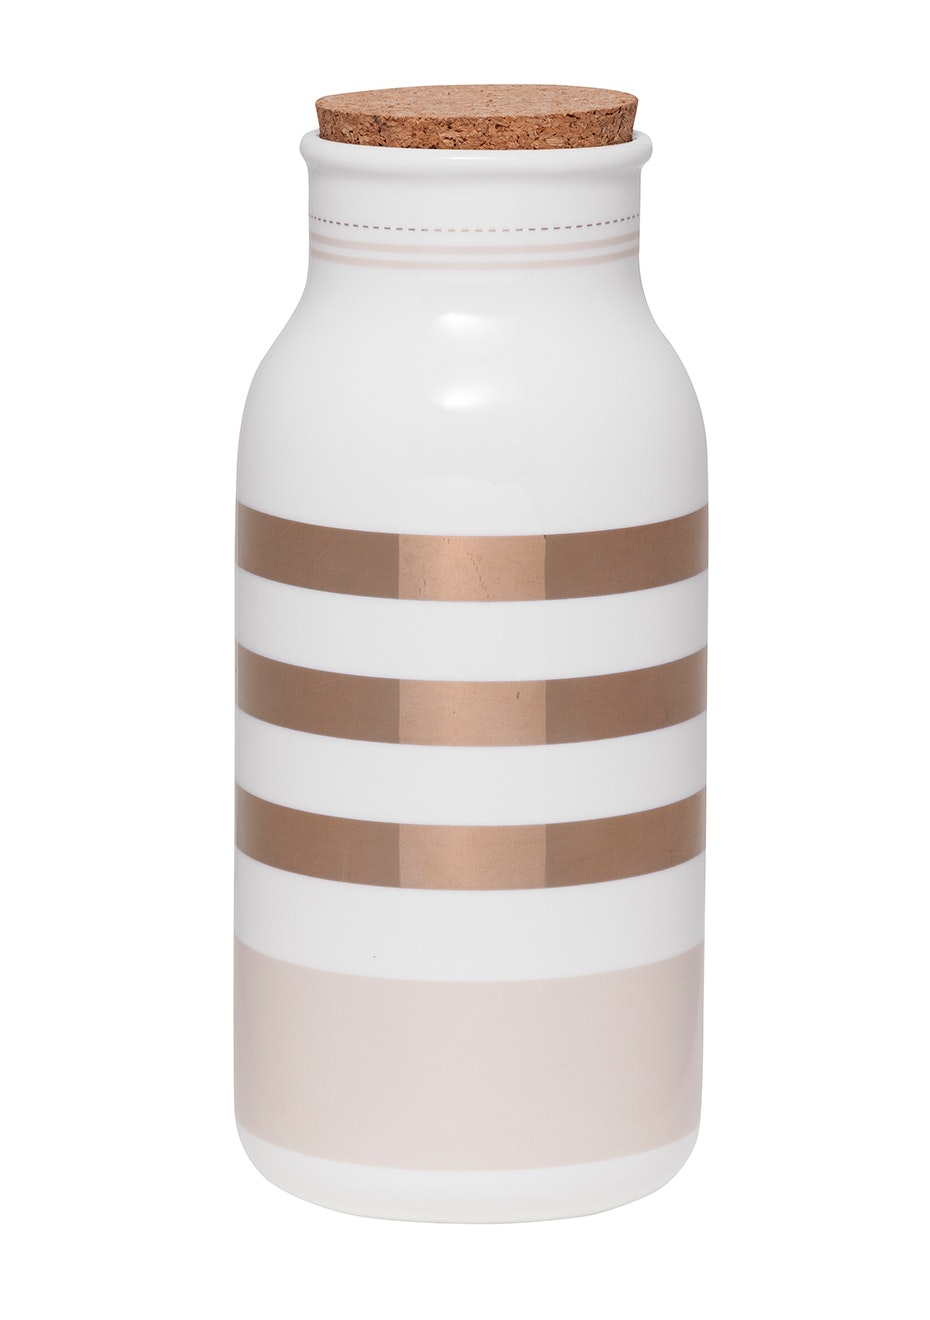 General Eclectic - Gold & Blush Bottle Lge